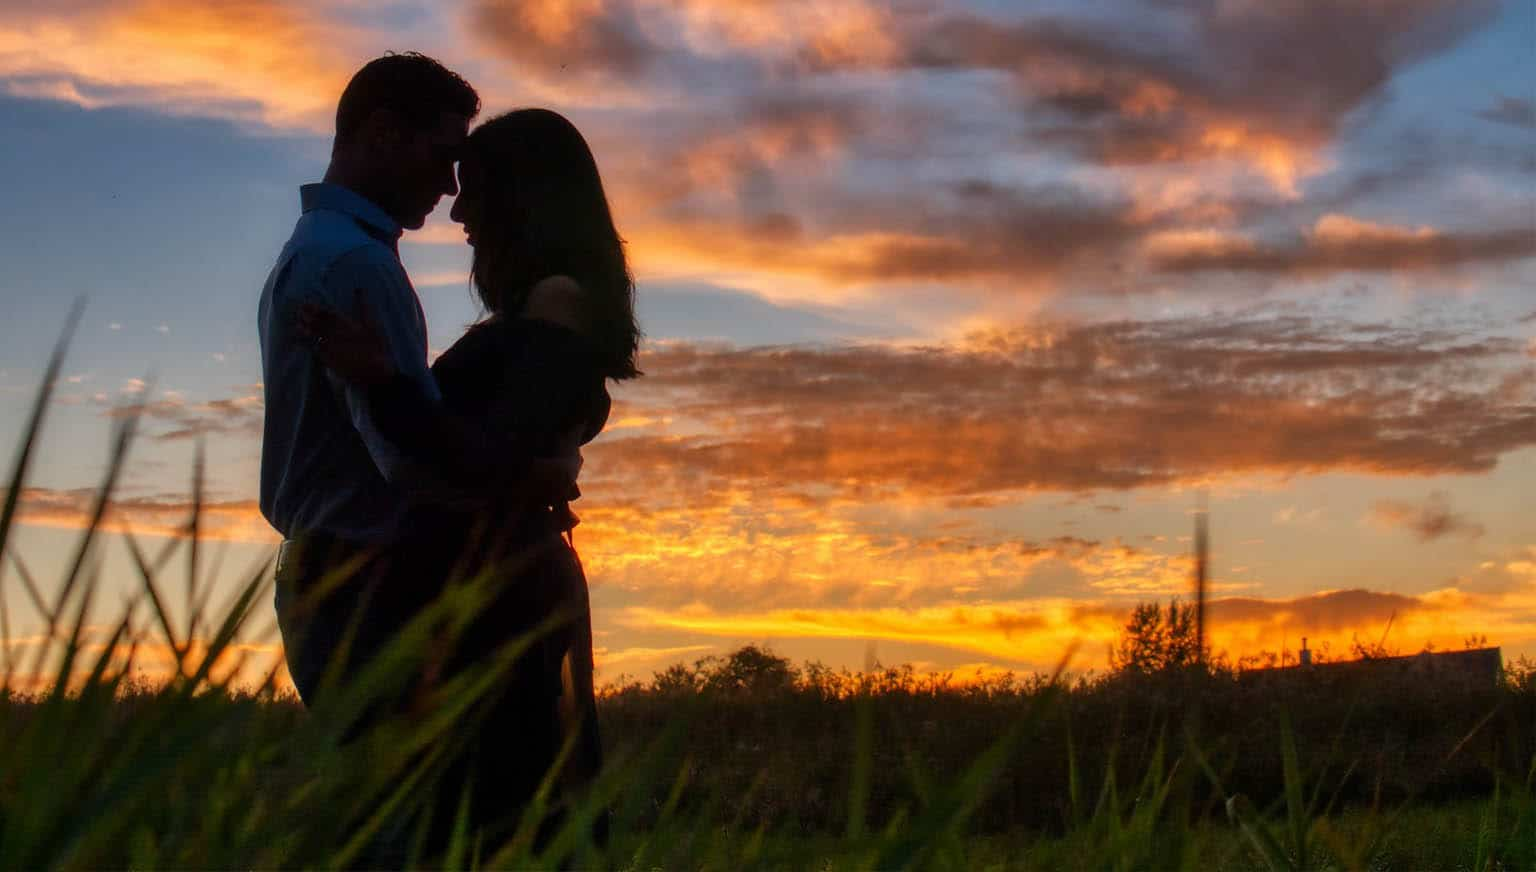 Relationship and Marriage Counseling, The Relationship Center of Michigan